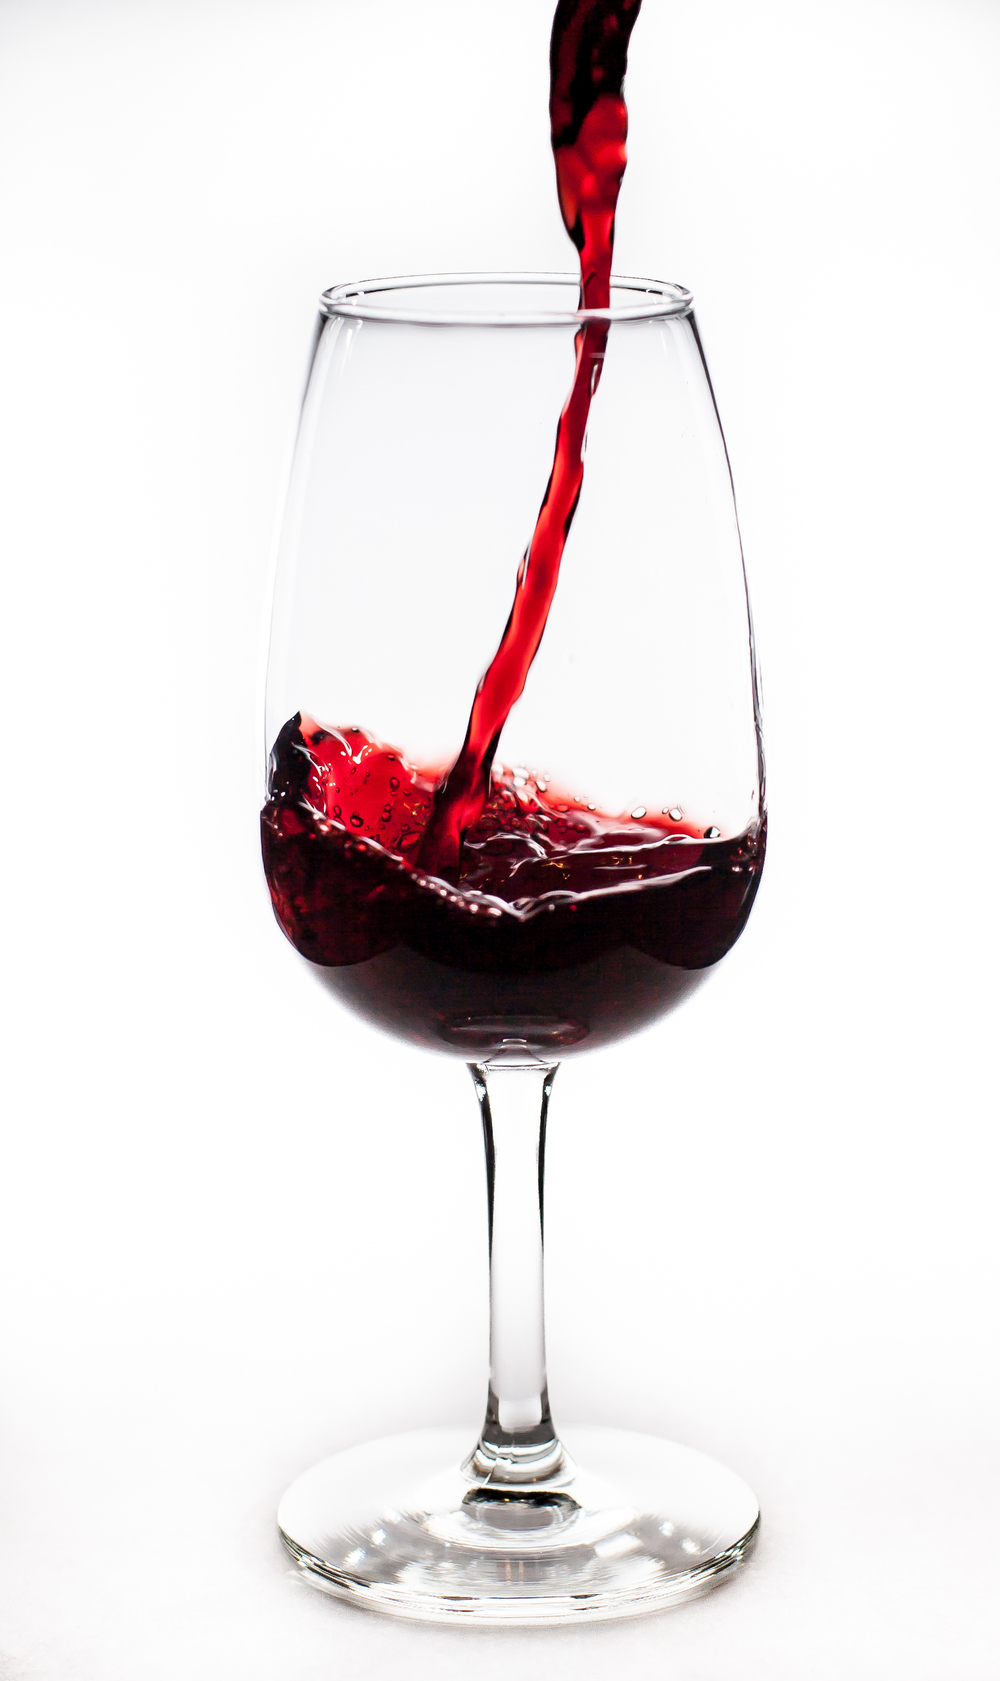 week-15---red-wine_15623873891_o.jpg